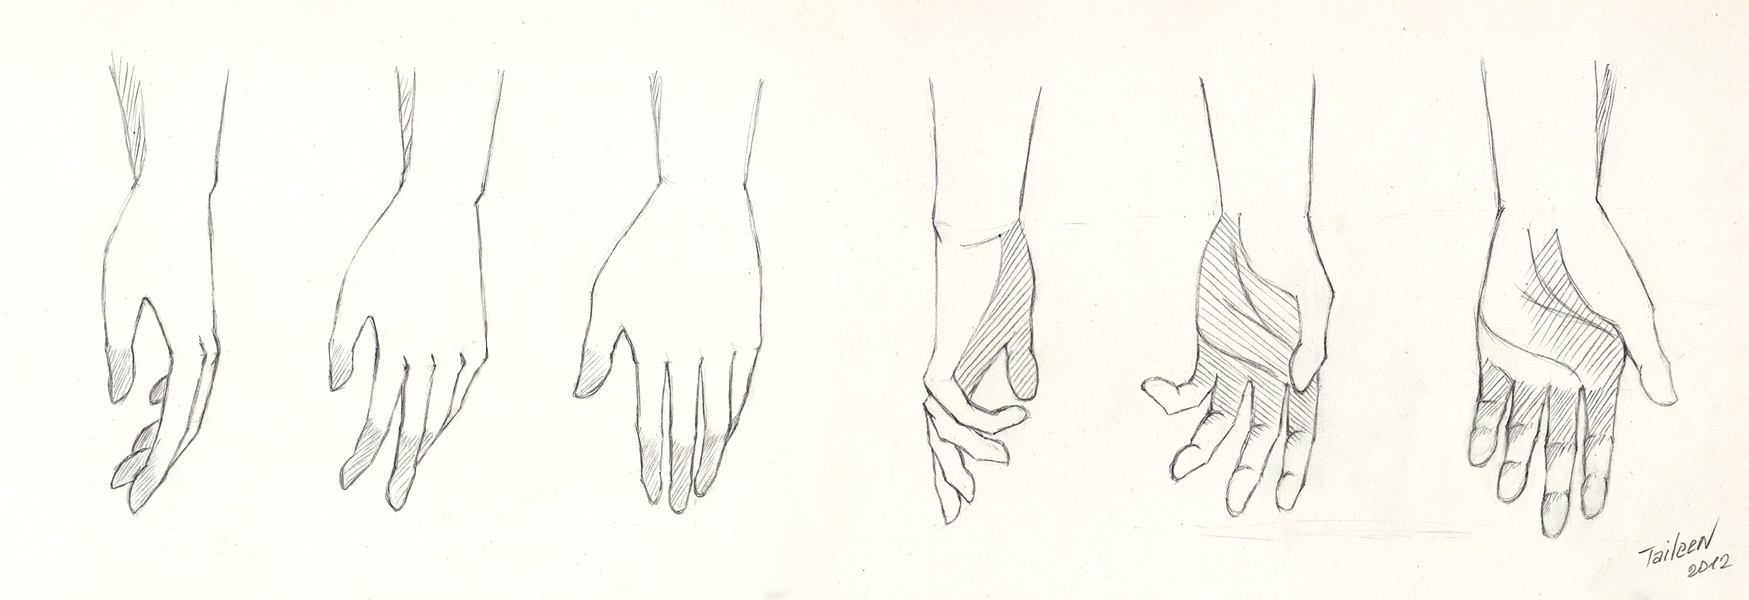 The practice of drawing hands by TaileenDenvers